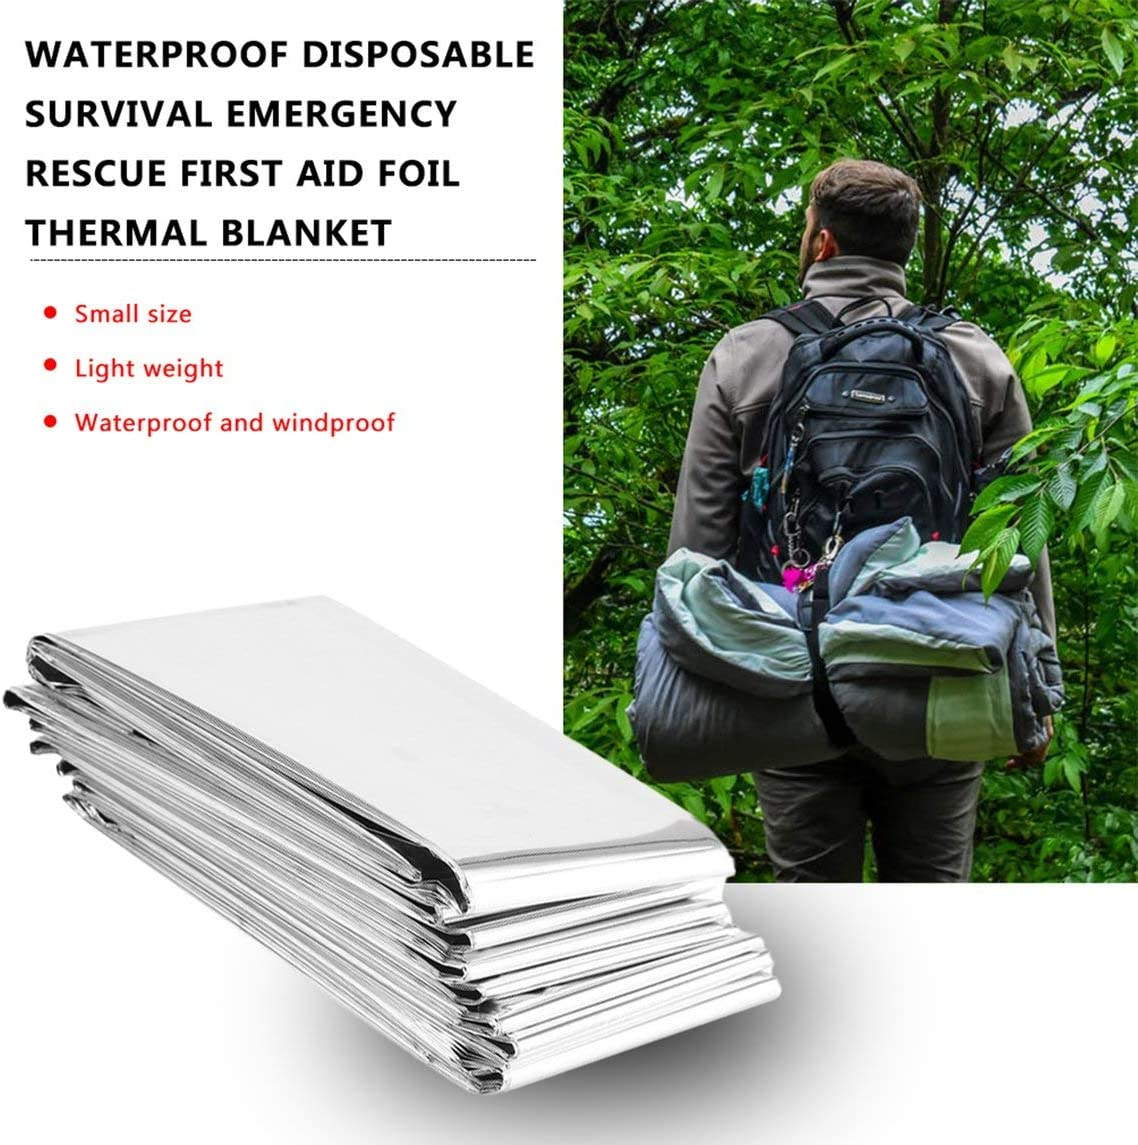 fgdjfhsdfgsdfh Waterproof Disposable Outdoor Military Survival Emergency Rescue Space Foil Thermal Blanket First Aid Sliver Curtain